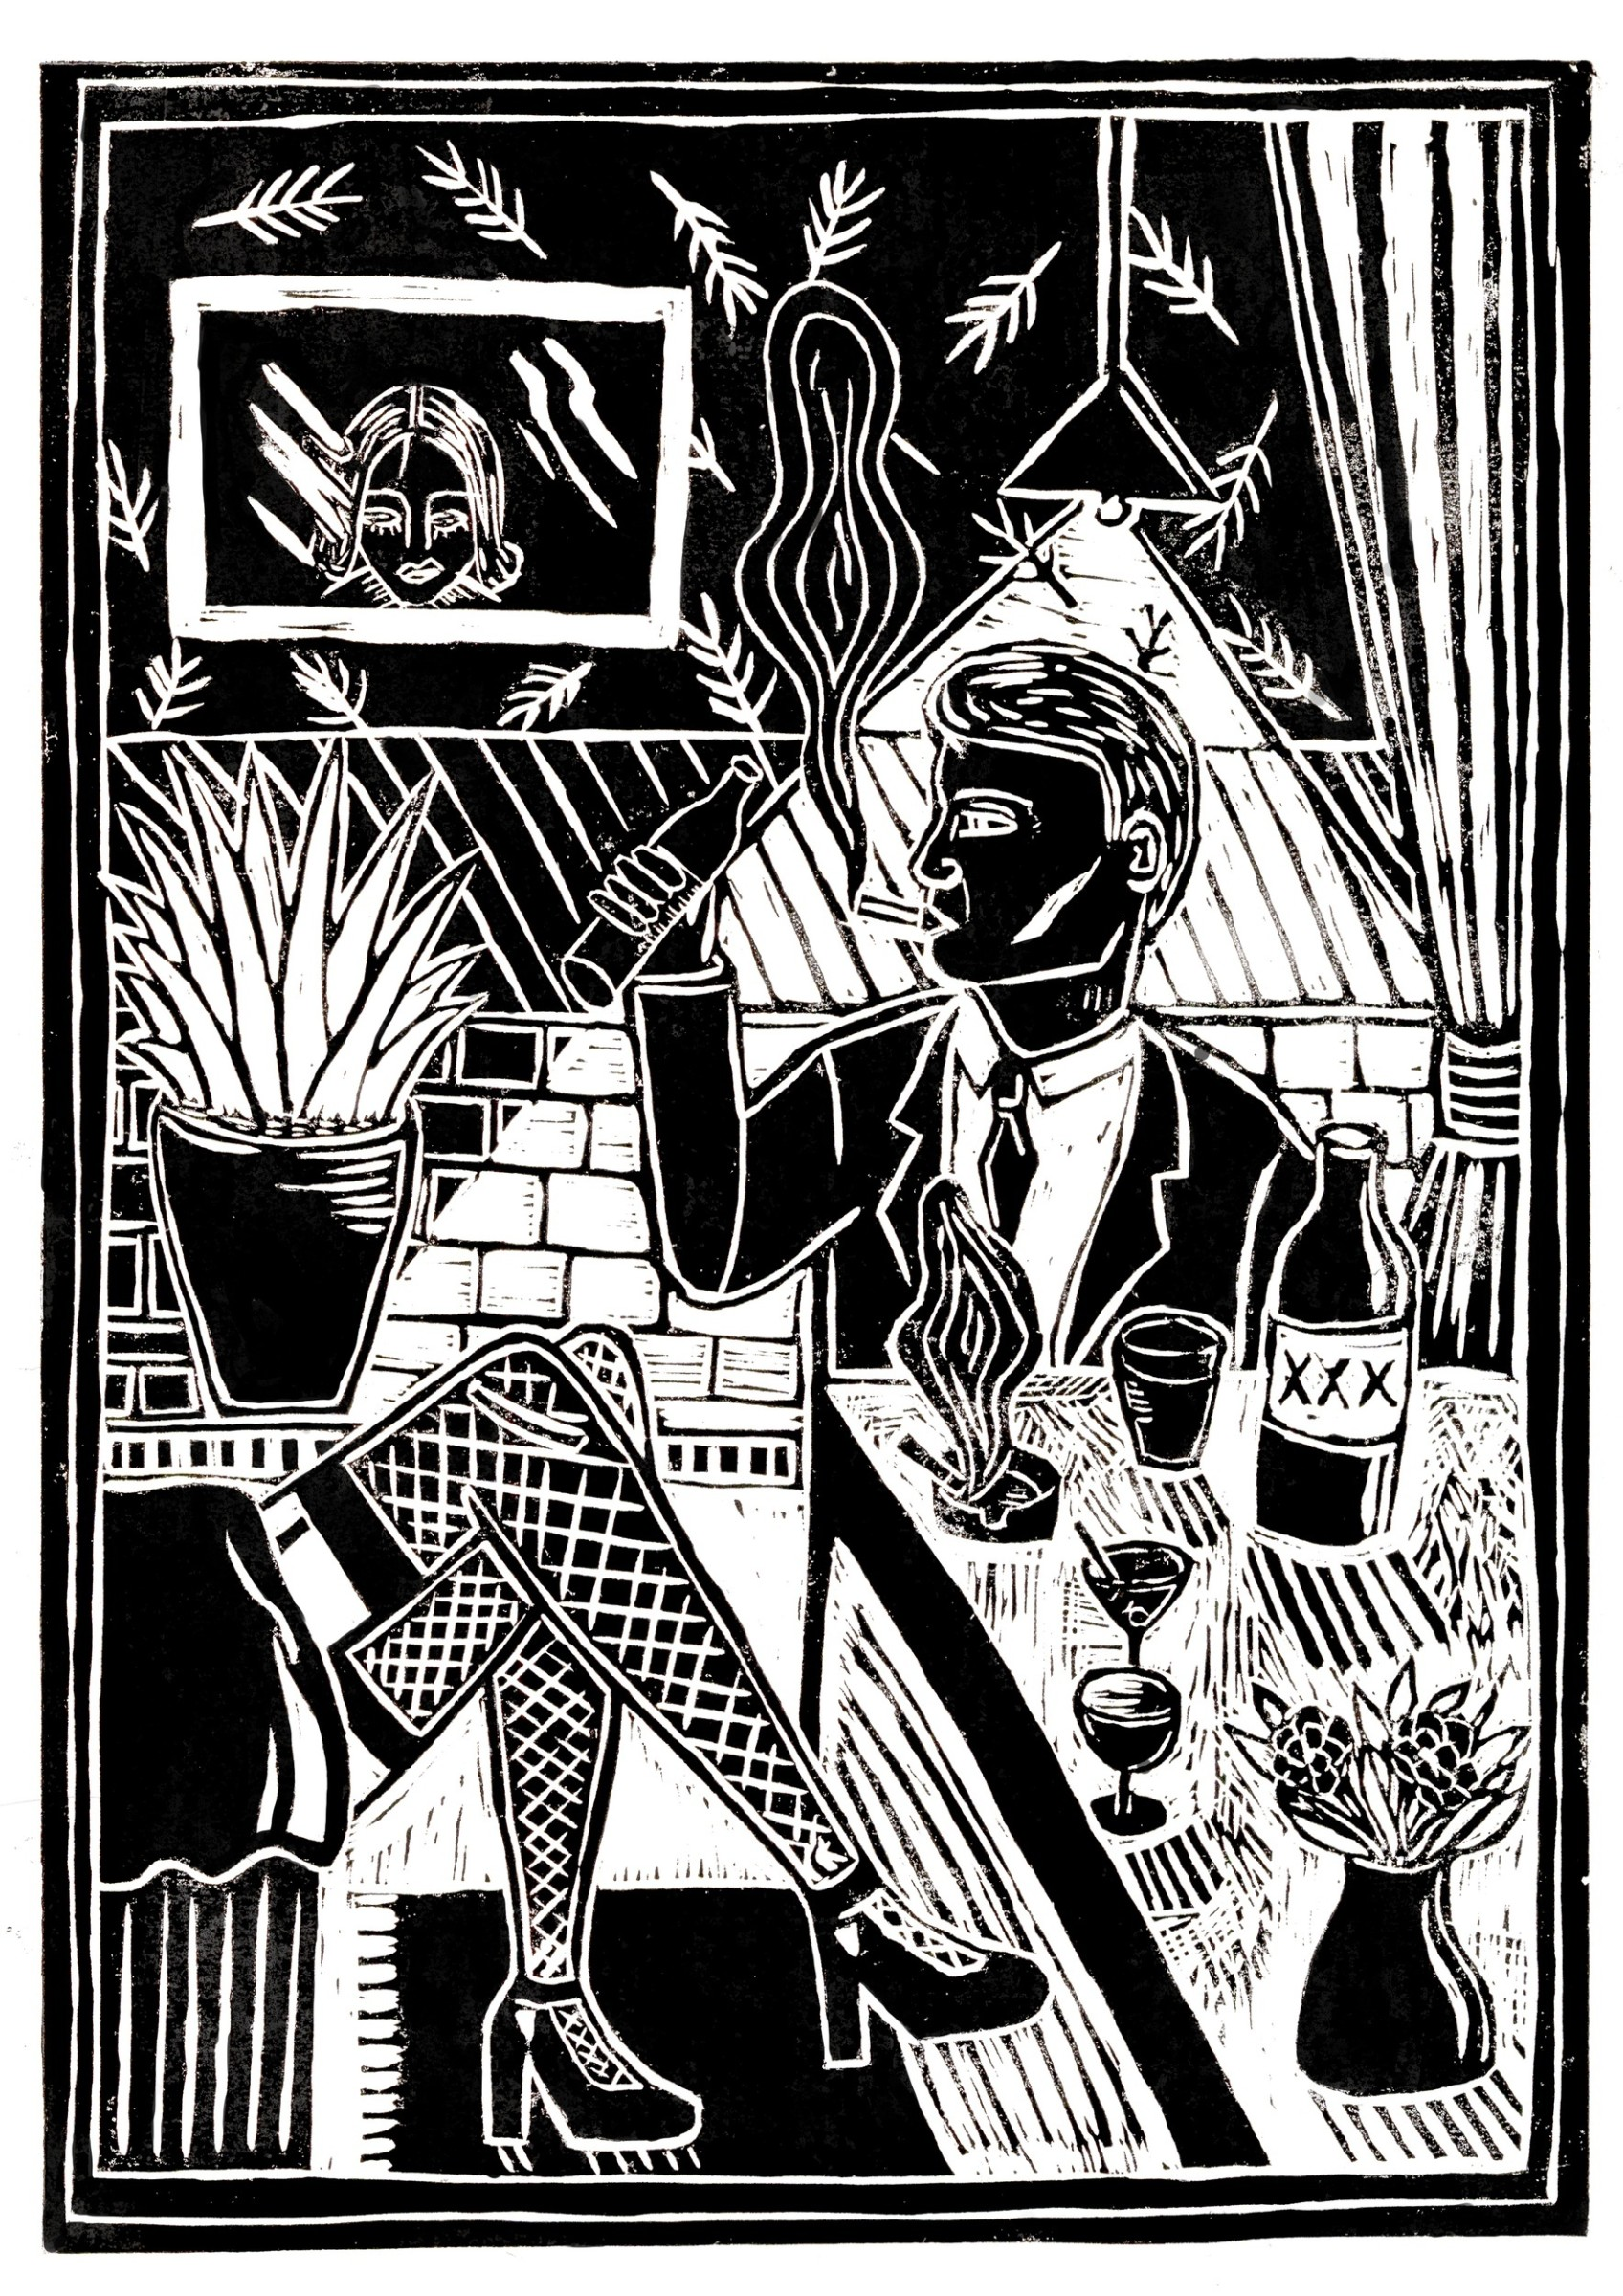 "<span class=""link fancybox-details-link""><a href=""/exhibitions/17/works/image_standalone781/"">View Detail Page</a></span><p><strong>Sophie Pitcock</strong></p><p>Pretty Wooman</p><p>linocut, ed of 100</p><p>30 x 42cm</p><p>£200 framed</p><p>£150 unframed</p>"